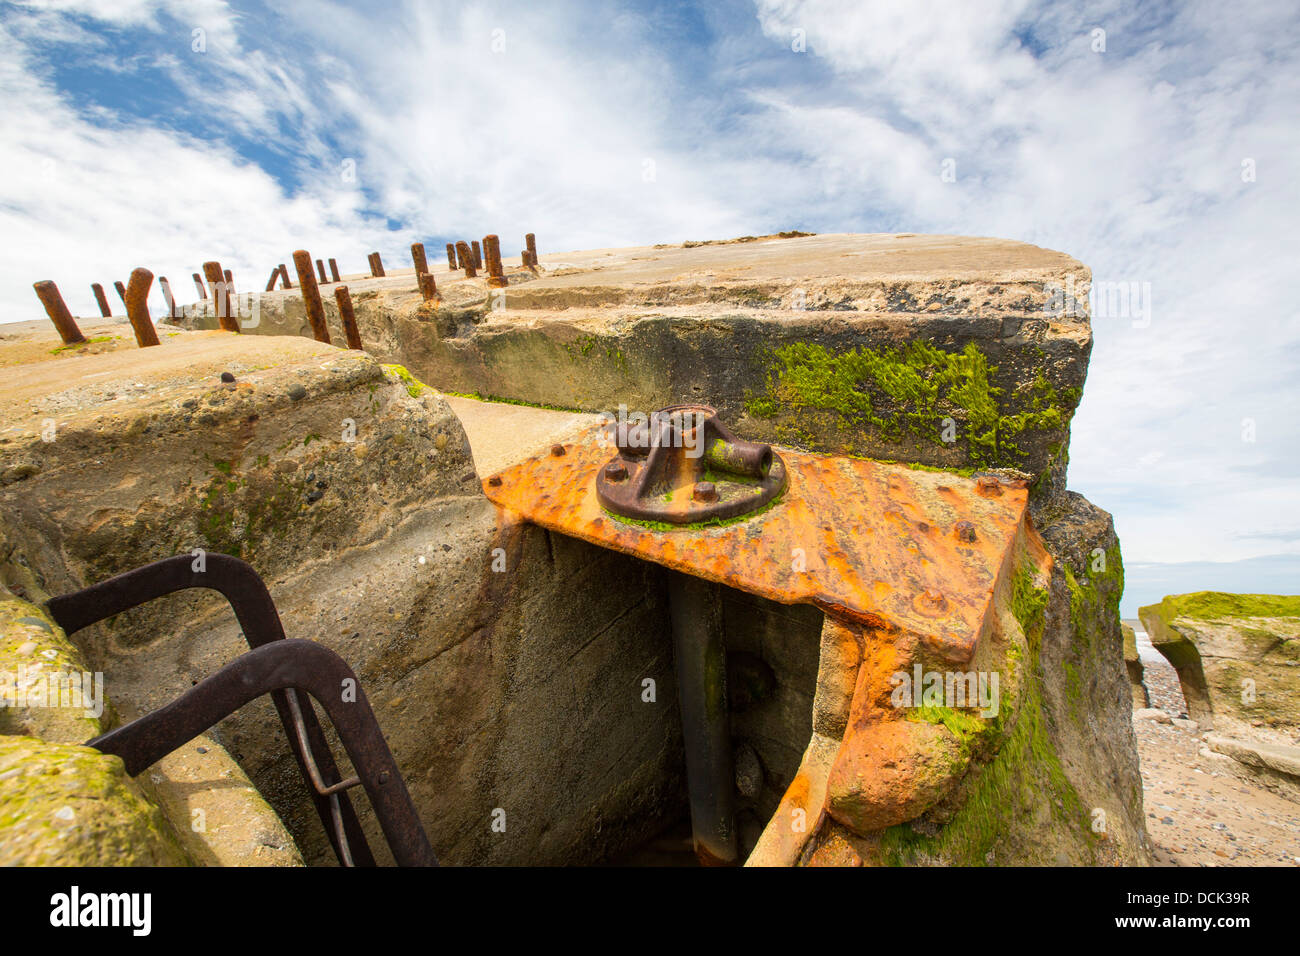 The Remains of a gun emplacement at the Godwin battery on the beach at Kilnsea - Stock Image